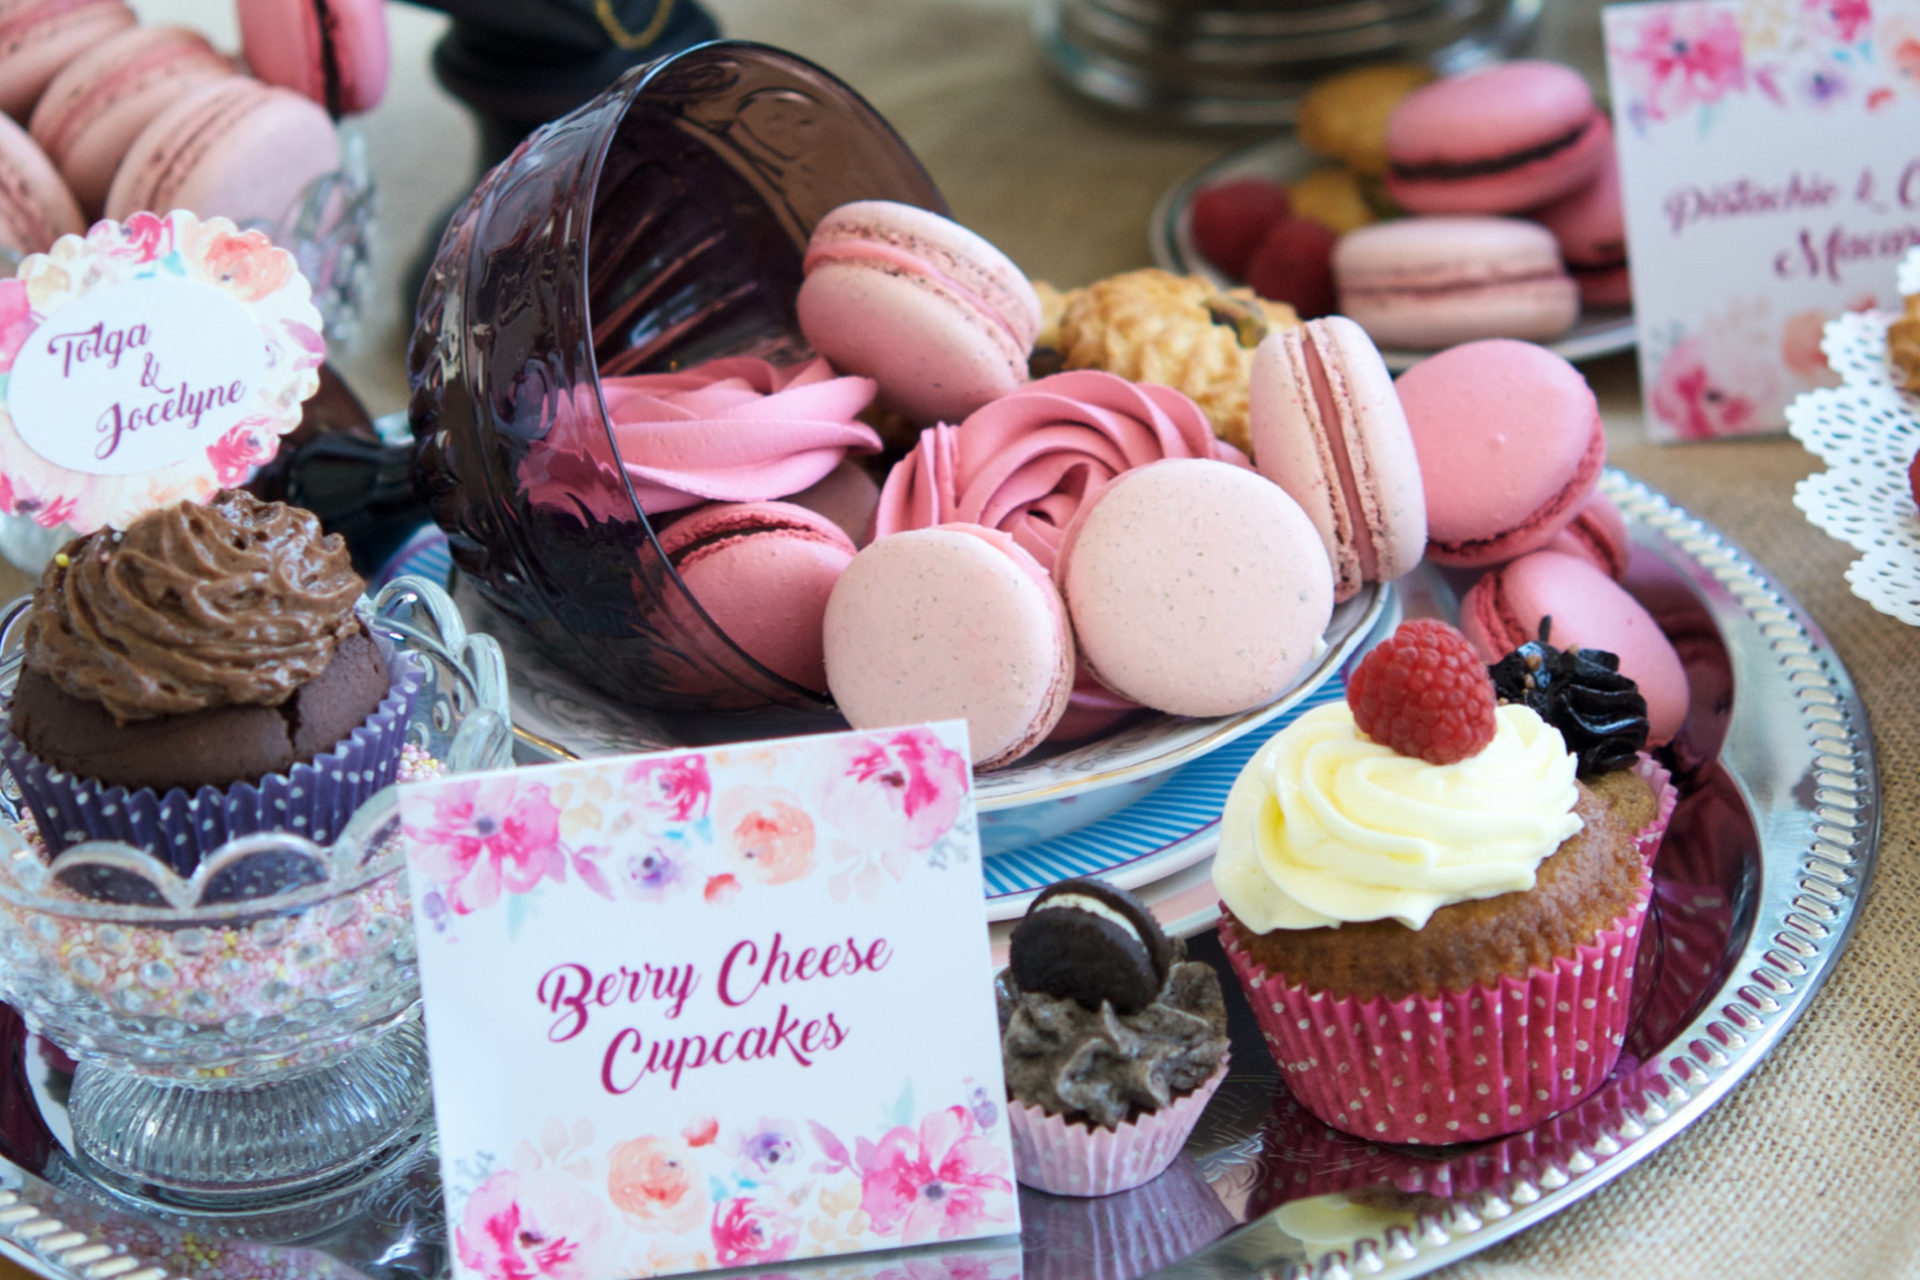 Master class mesas dulces, mesa dulce, curso reposteria, barcelona, mericakes, macarons, eclairs, party planner, event planner, dessert table,